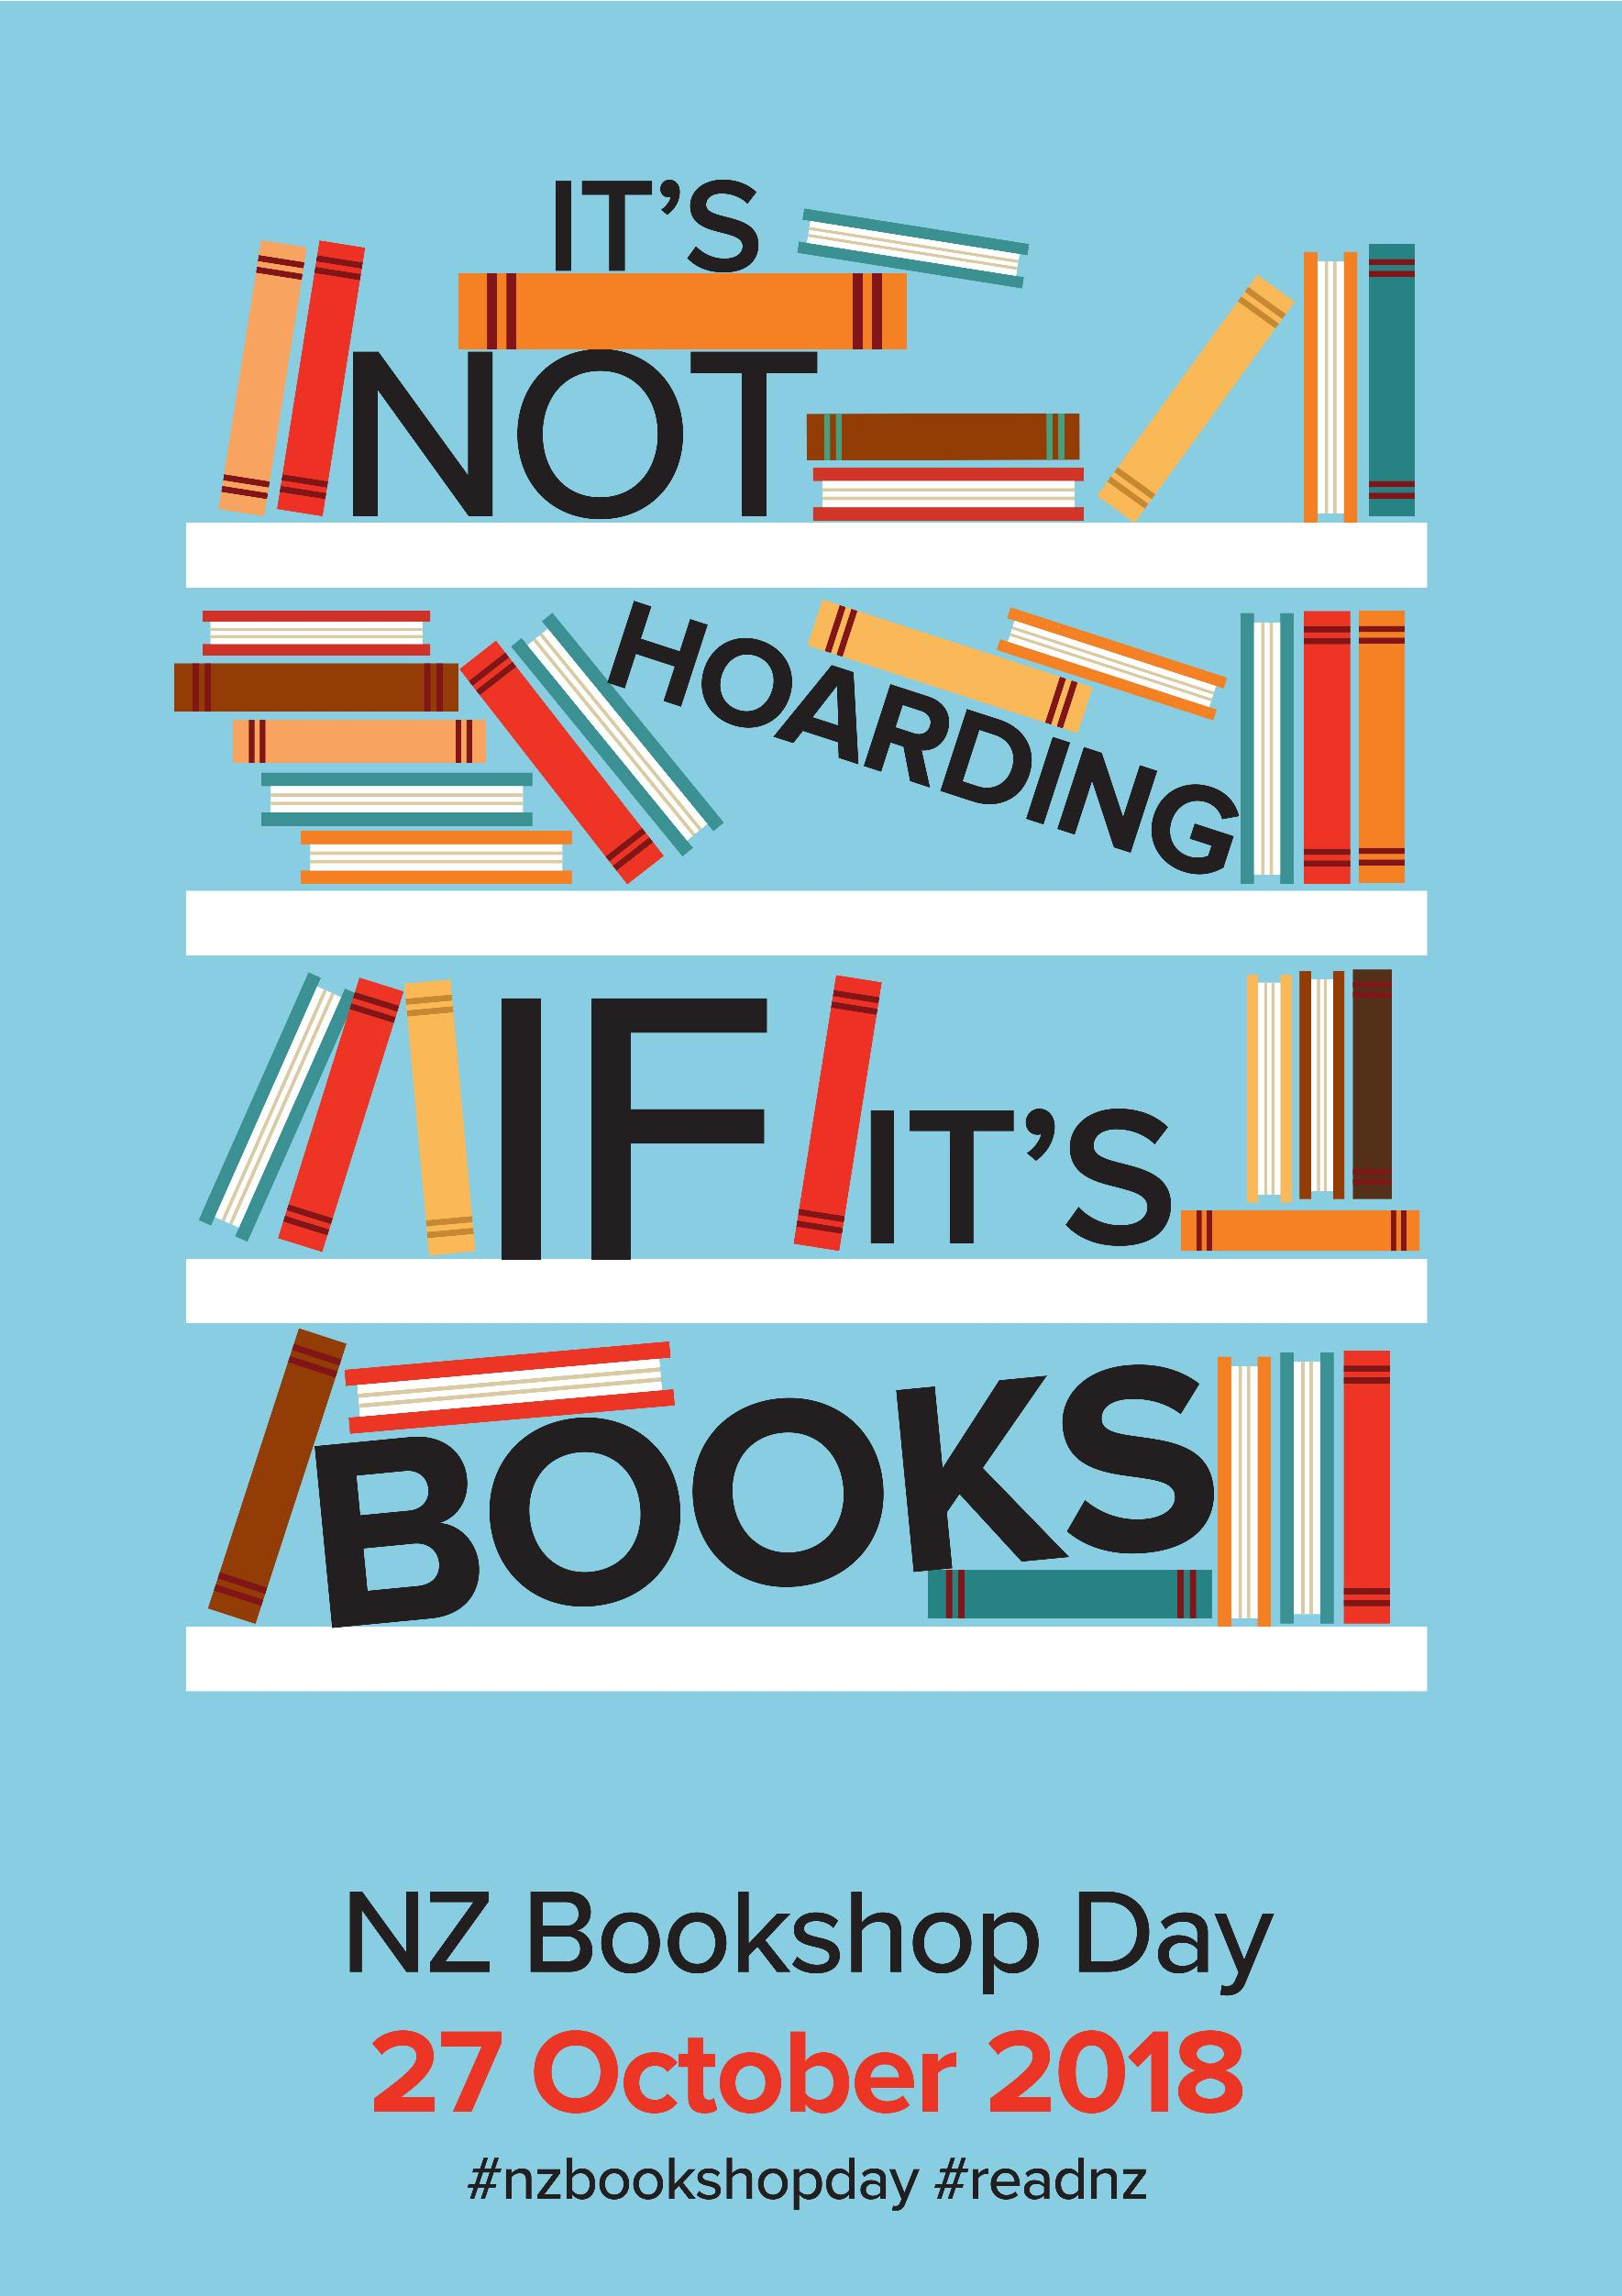 booksellers_bookshopday_poster_itsnothoarding_0-page-001.jpg